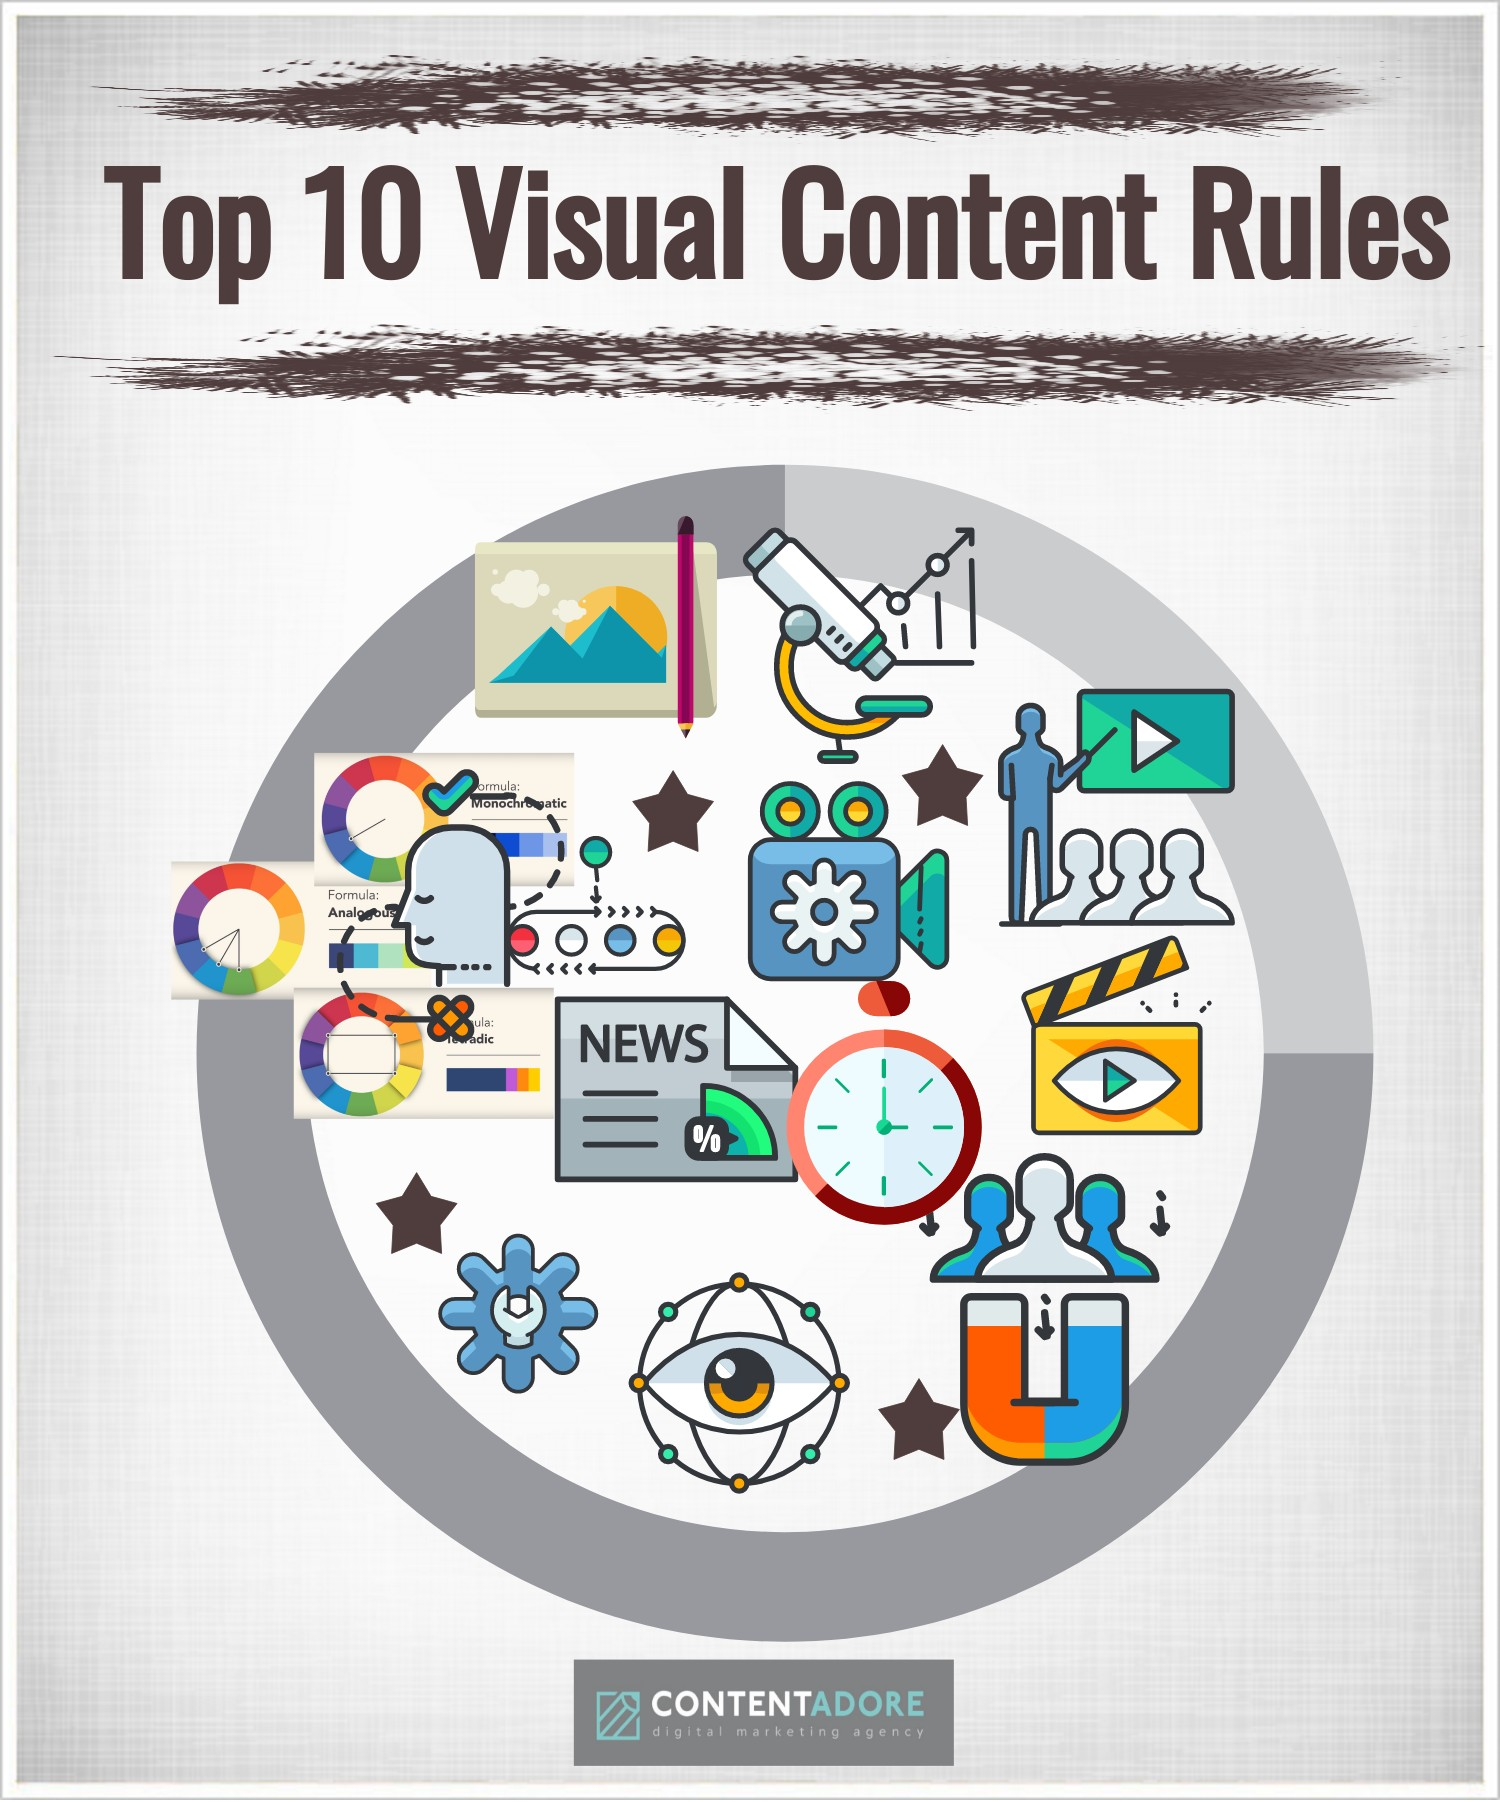 Top 10 Visual Content Rules